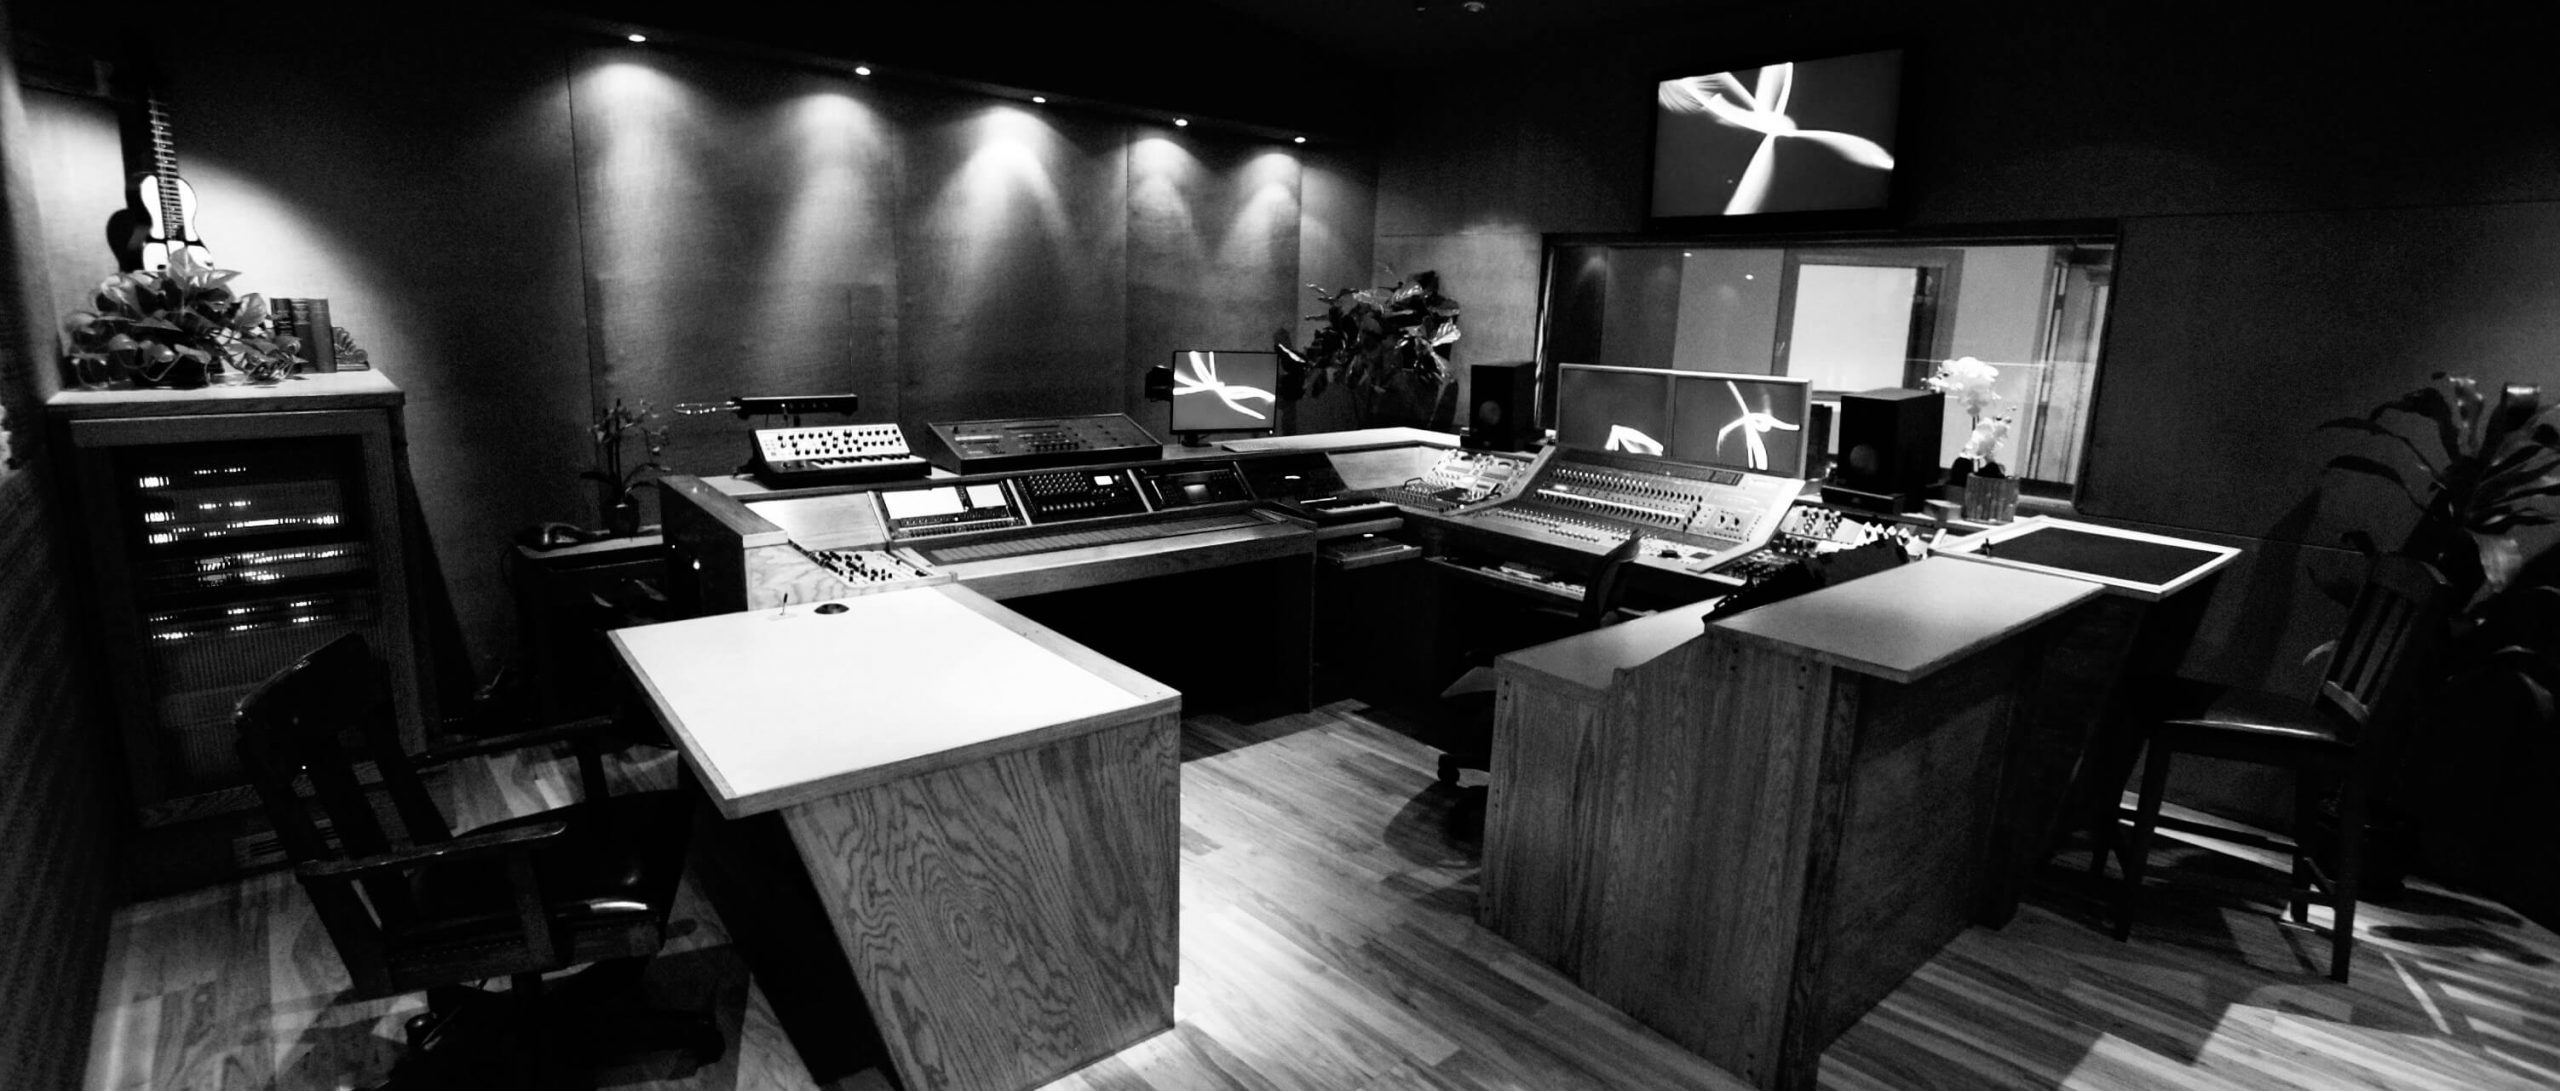 Kemper Room image in black and white